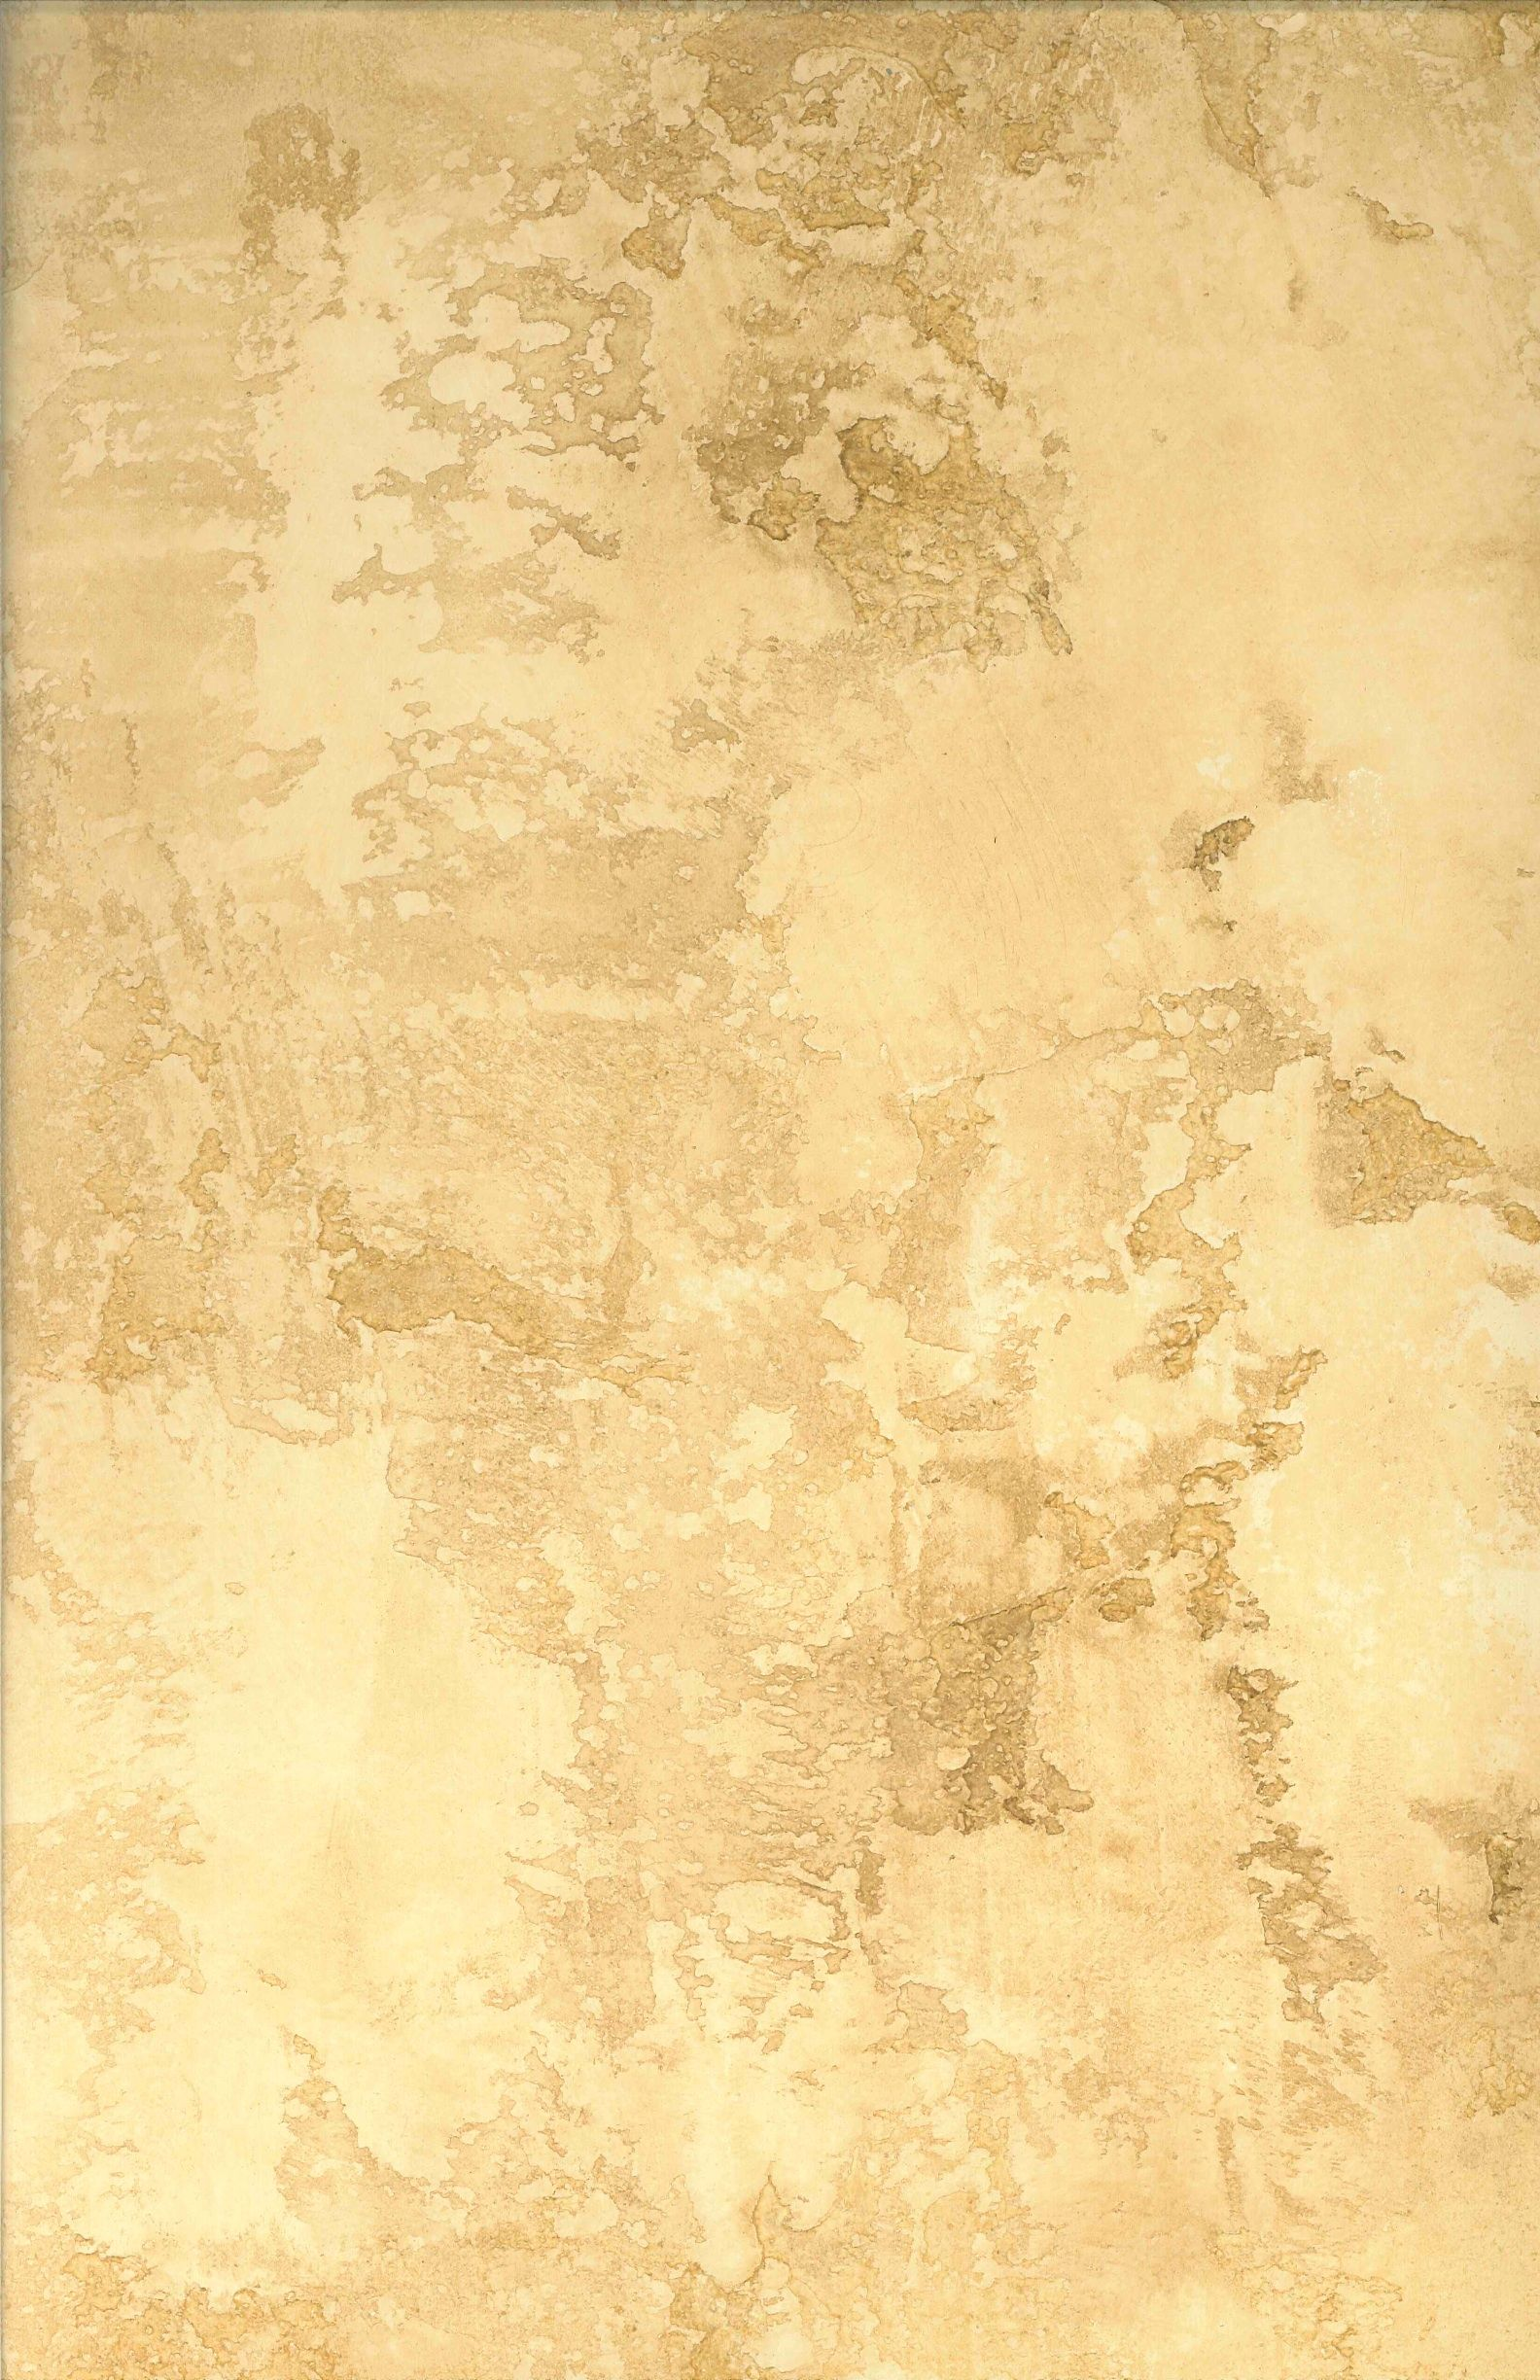 Distressed marmorino venetian plaster for walls i like for Texture paint images